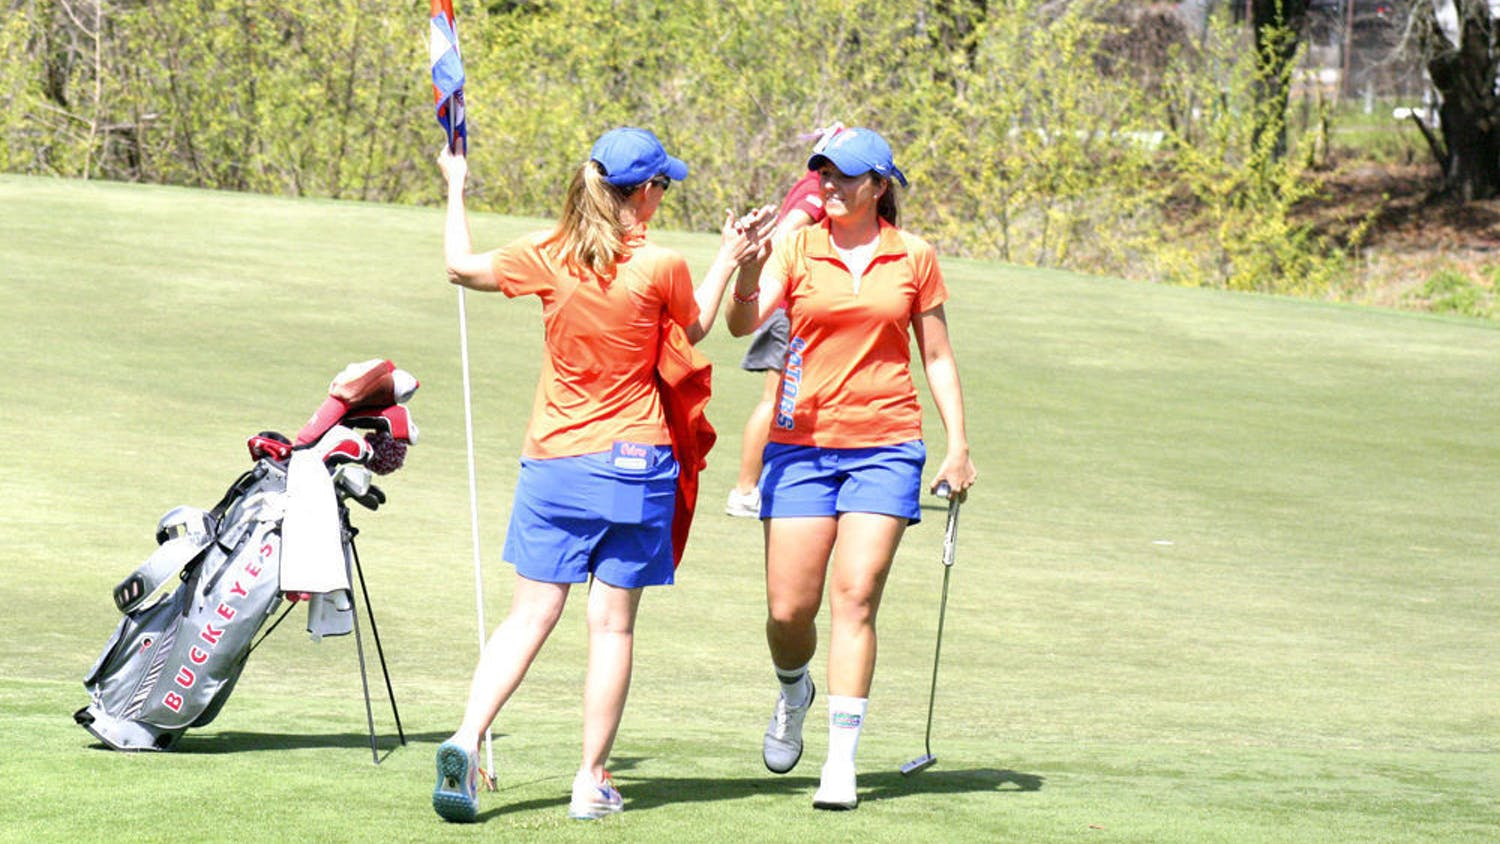 Despite many distractions and obstacles in the fall, the Gators women's golf team is preparing for a strong spring season.